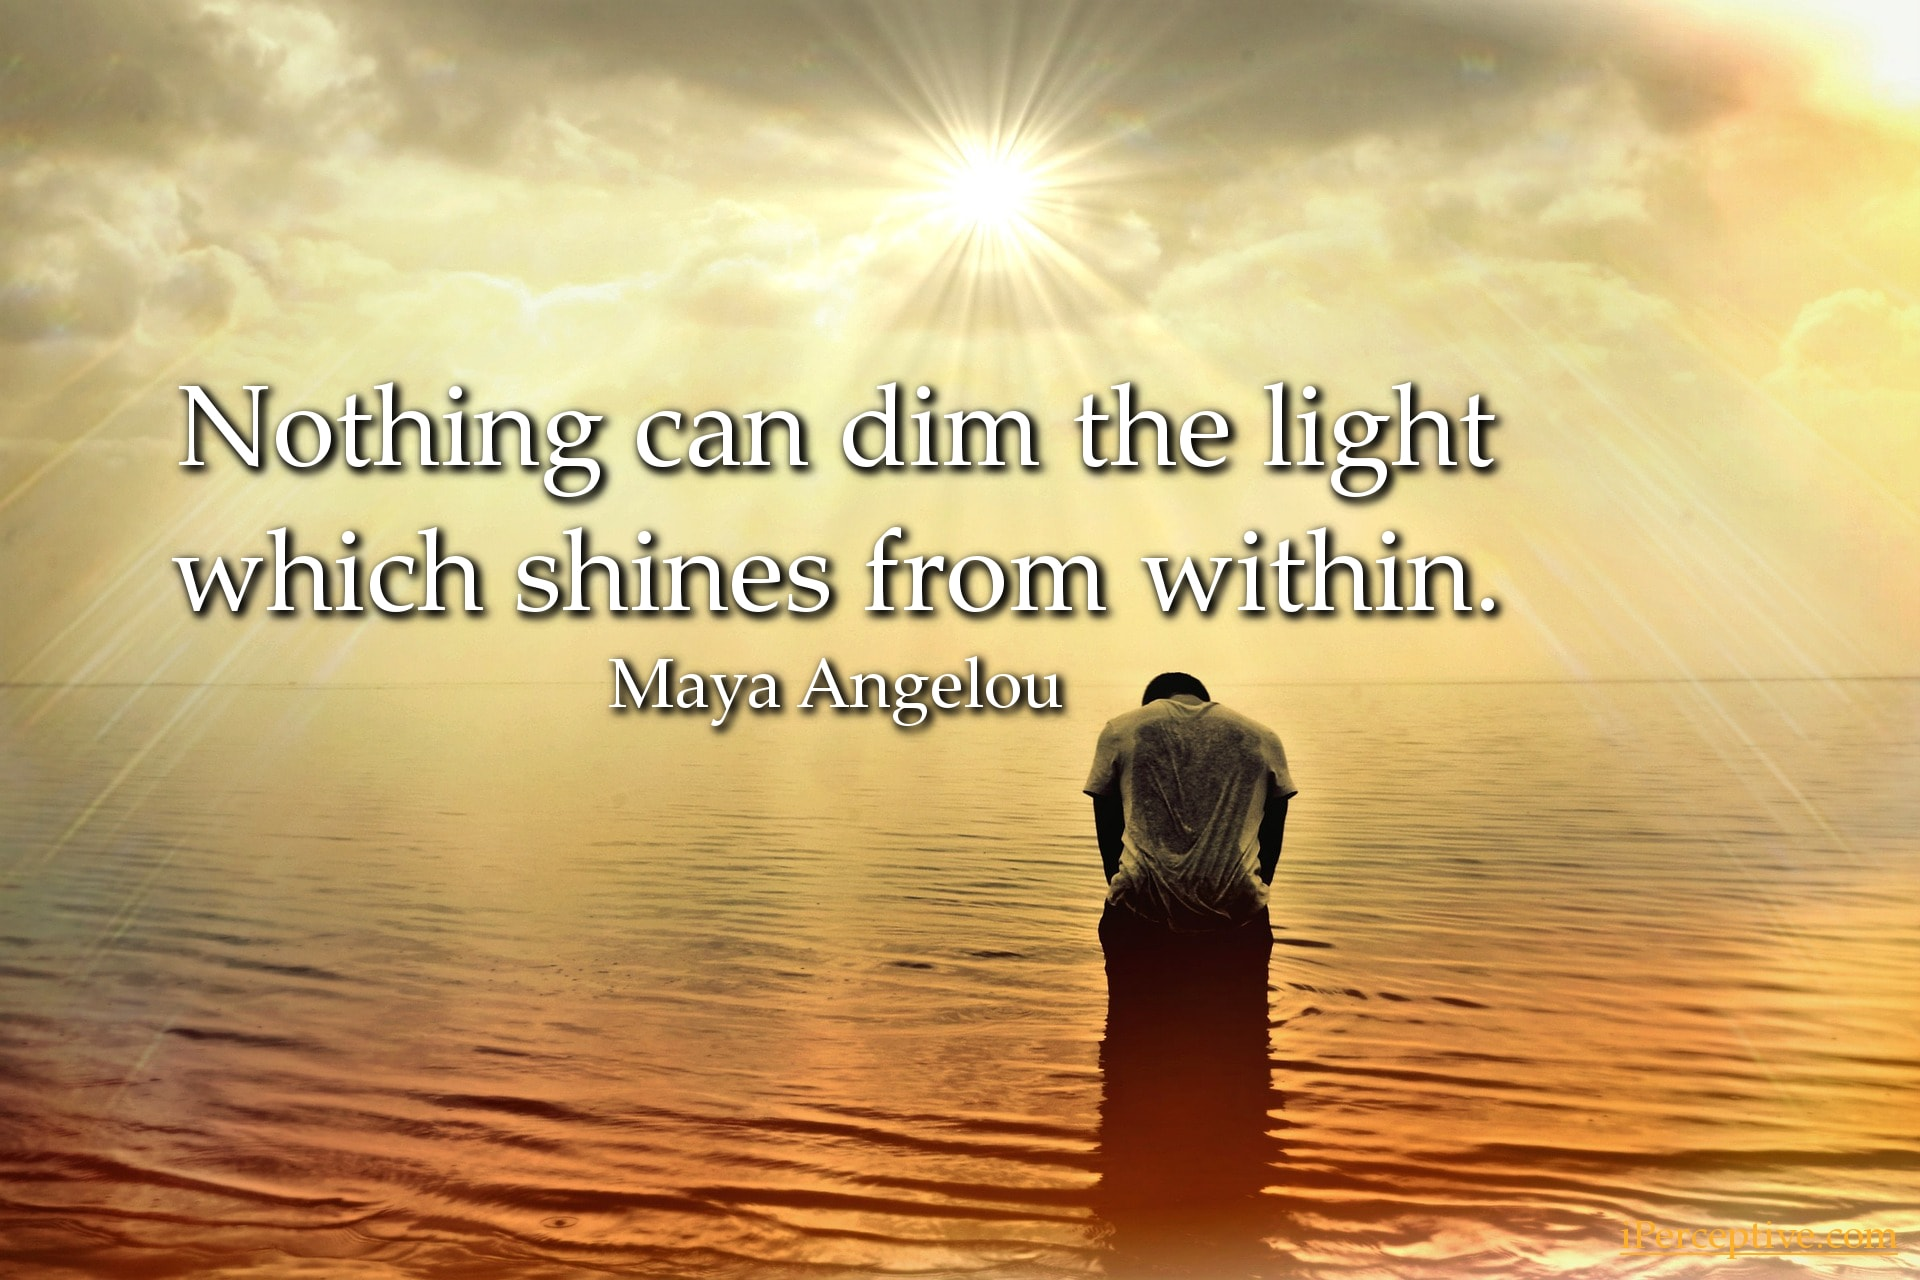 Maya Angelou Inspirational Quote: Nothing can dim the light which...